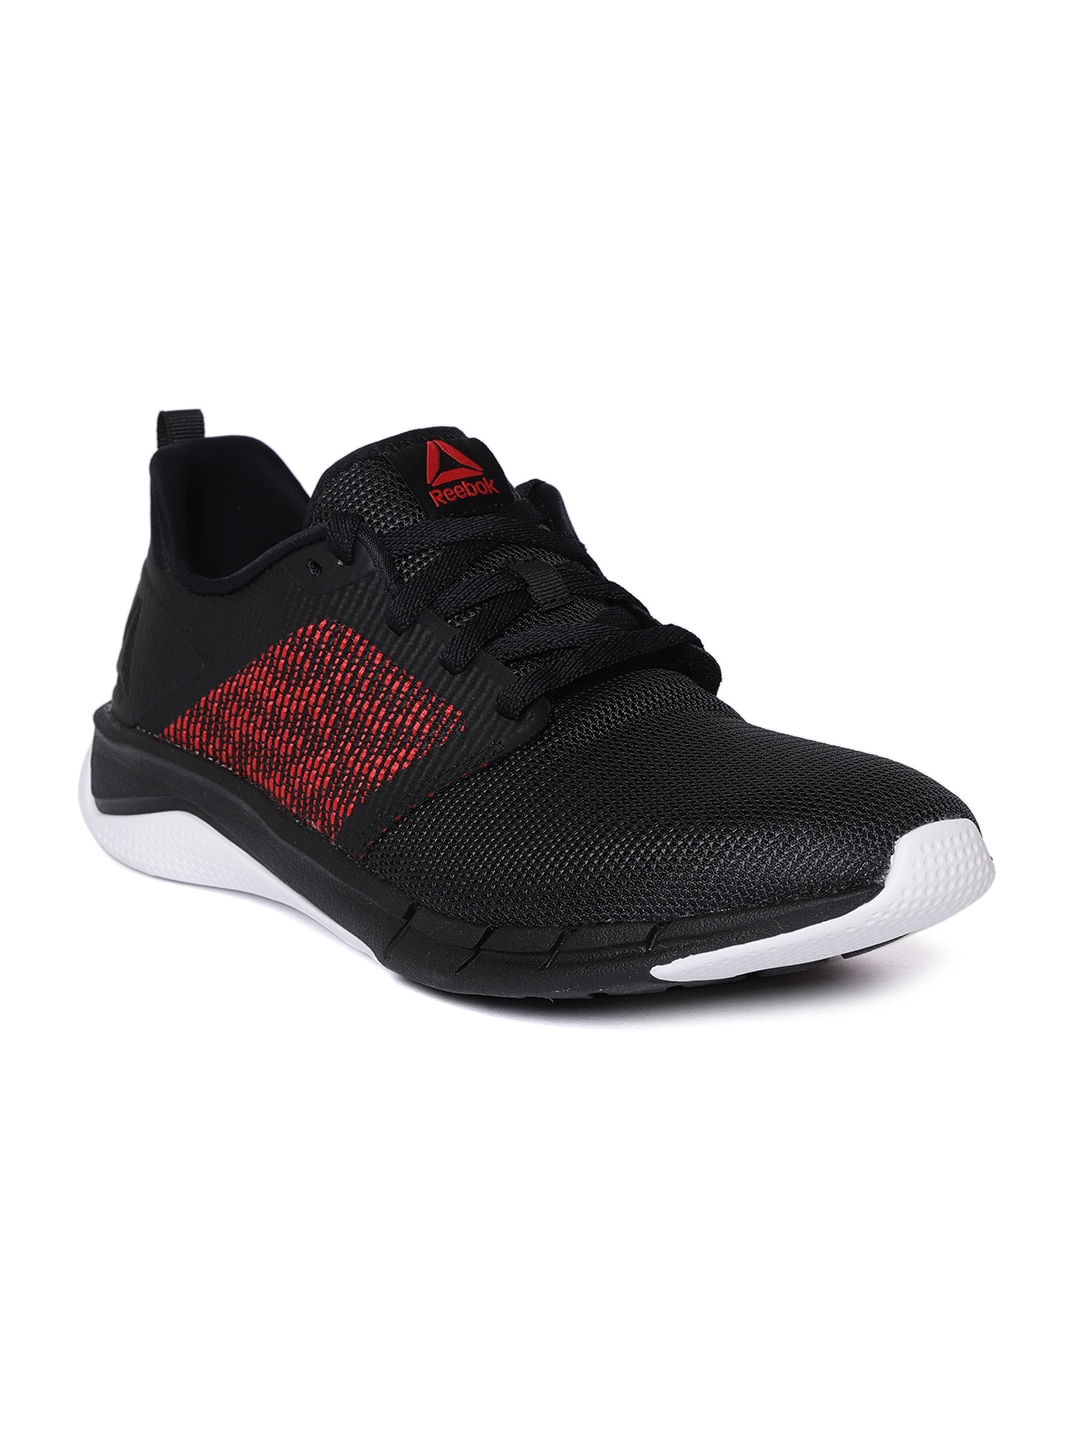 30418d88d2e40 Reebok Sports Shoes - Buy Reebok Sports Shoes in India